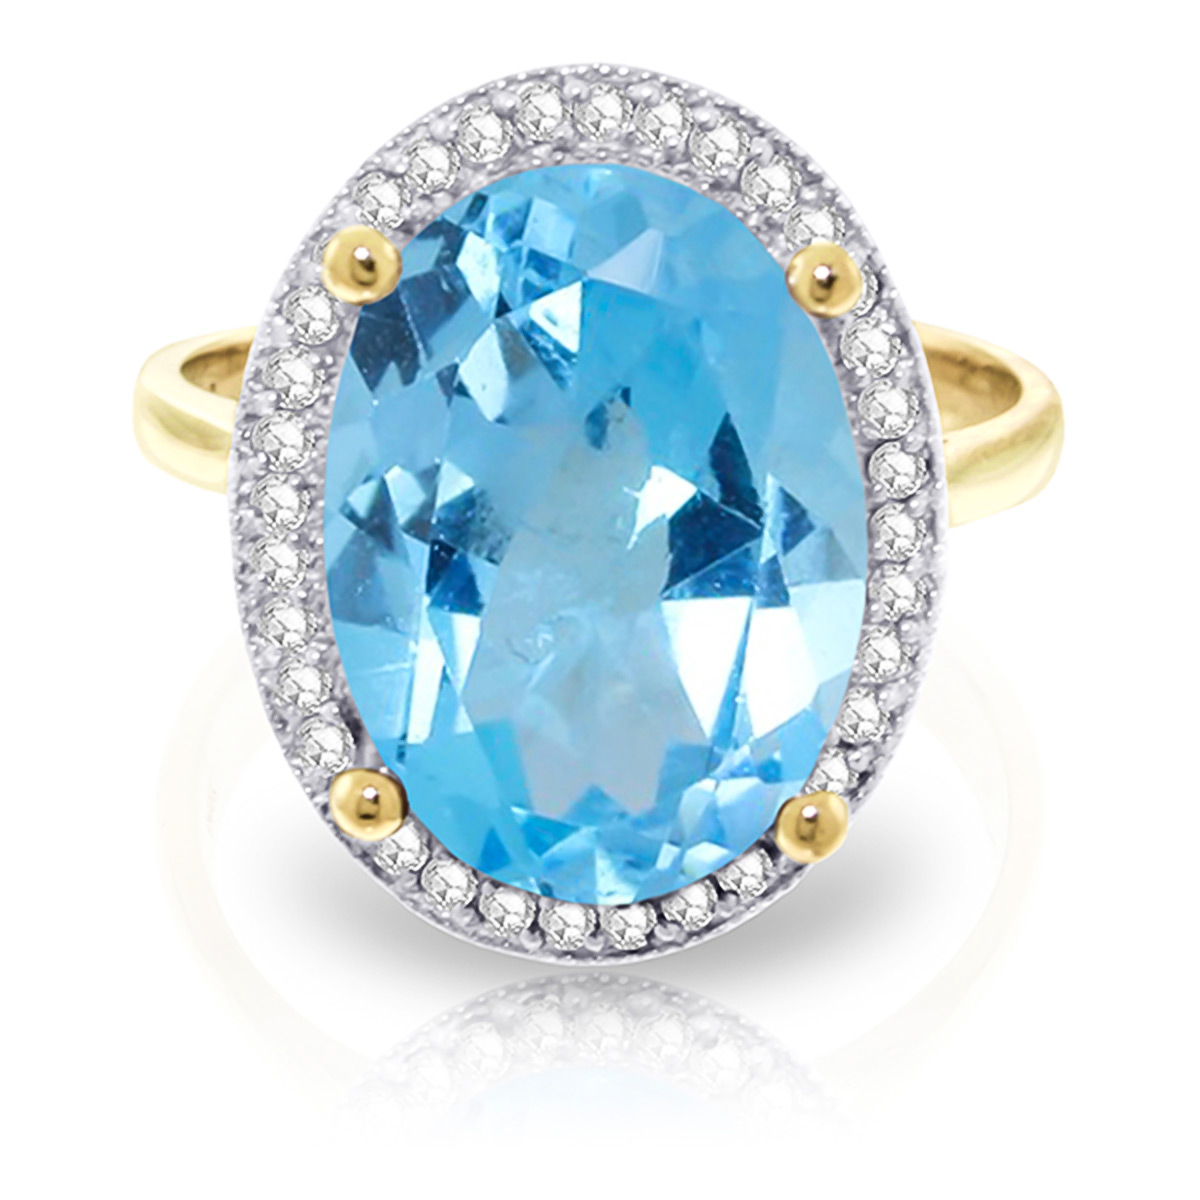 Blue Topaz and Diamond Halo Ring 7.4ct in 9ct Gold